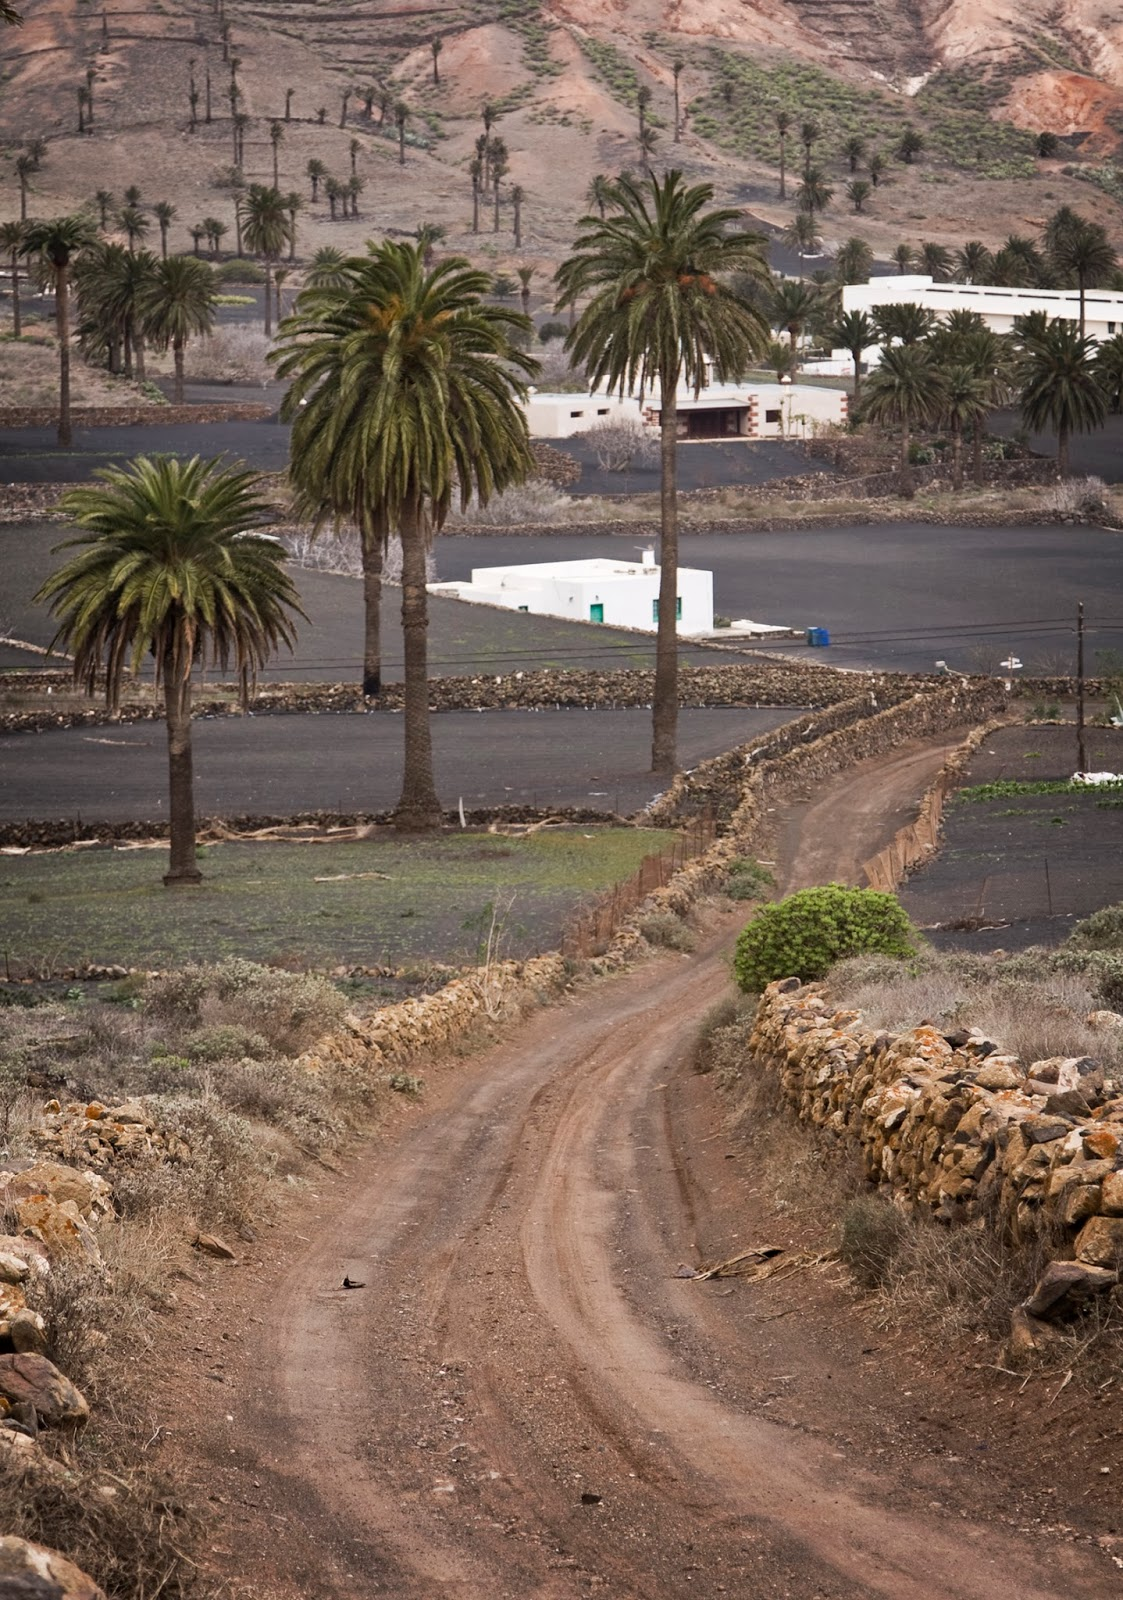 Lanzarote, North Afica, Dirt Road